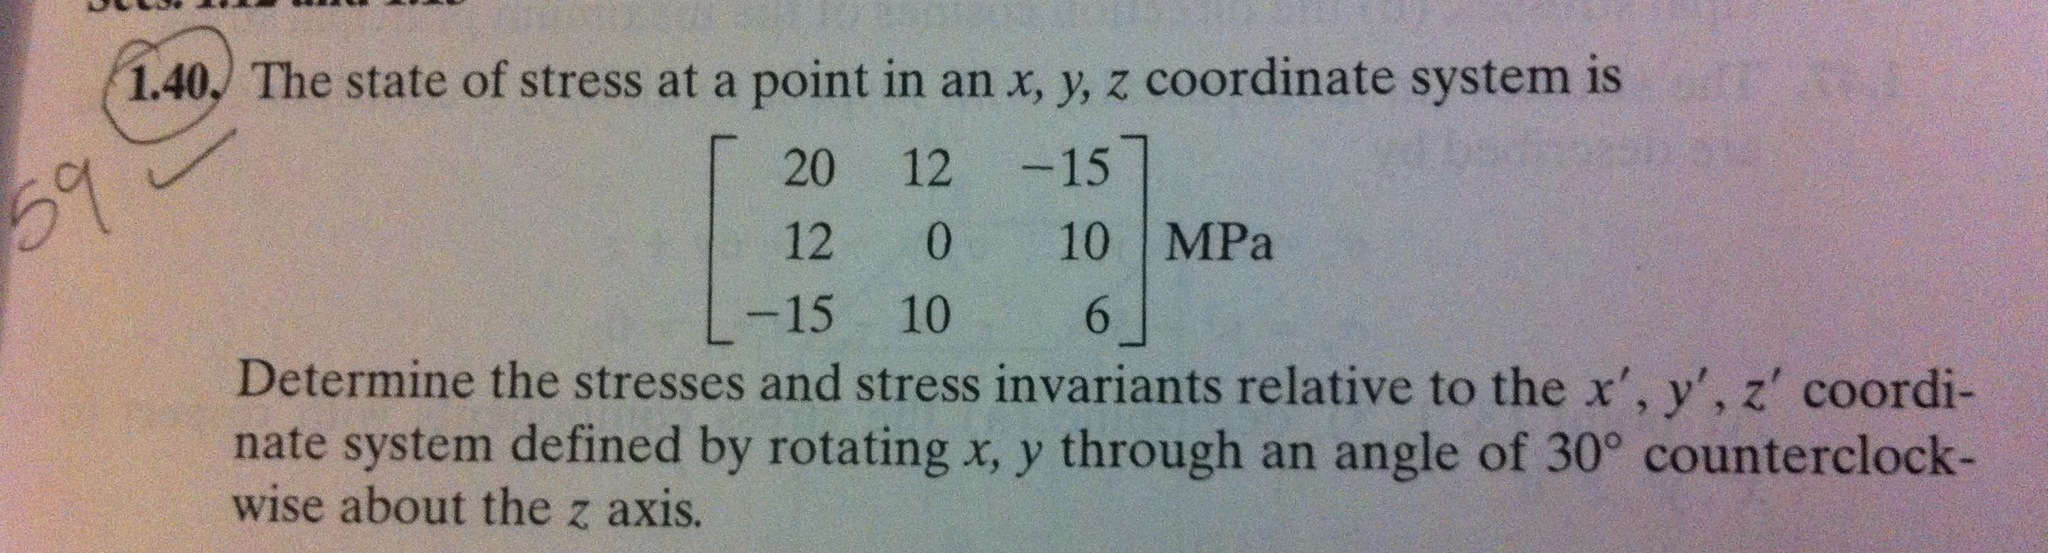 The state of stress at a point in an x, y, z coord